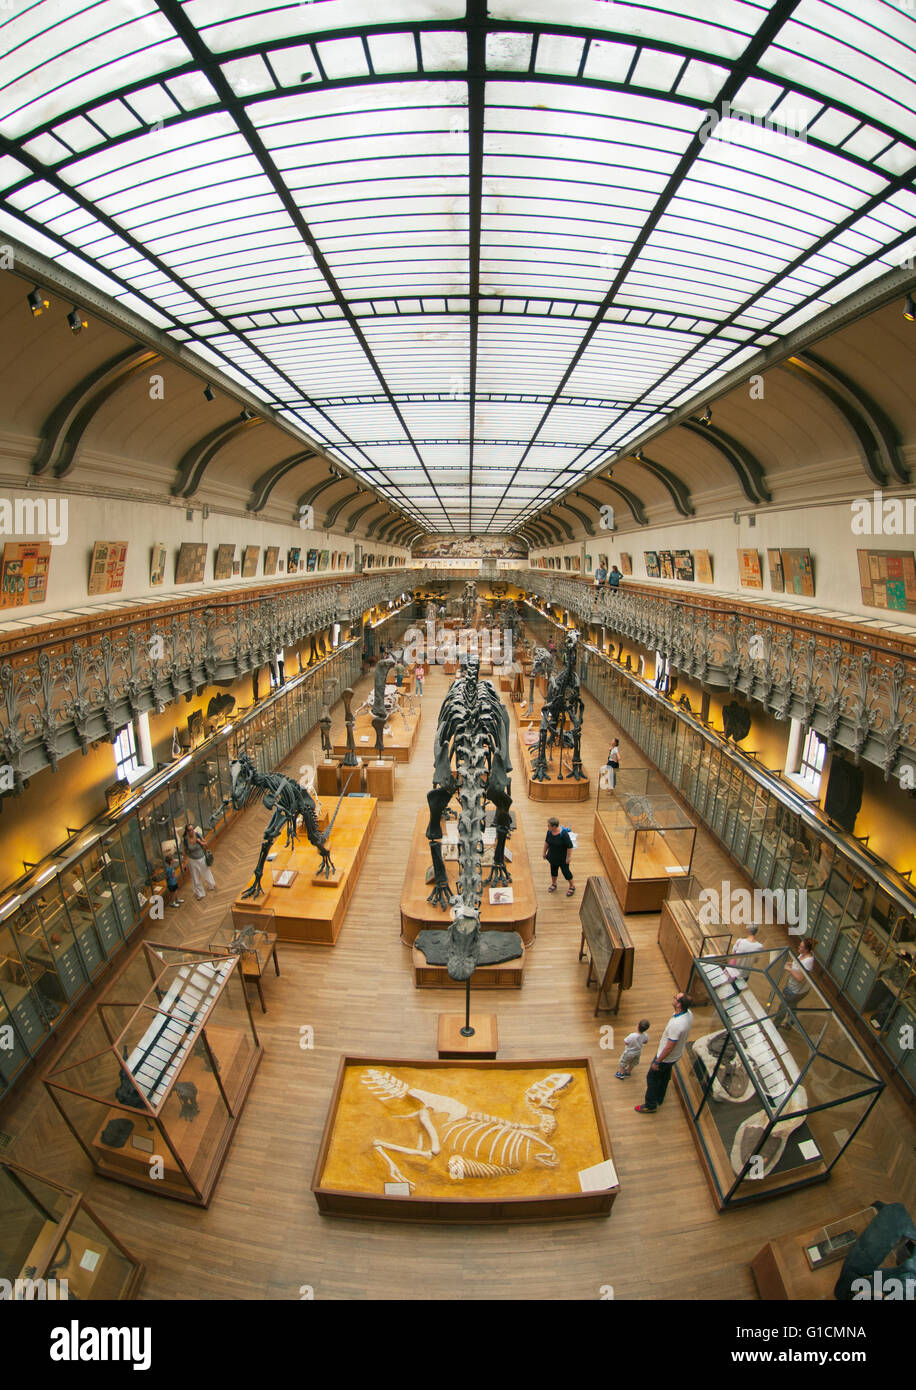 Skeletons of Dinosaurs, French National Museum of Natural History, Jardin des Plantes, Paris, France - Stock Image